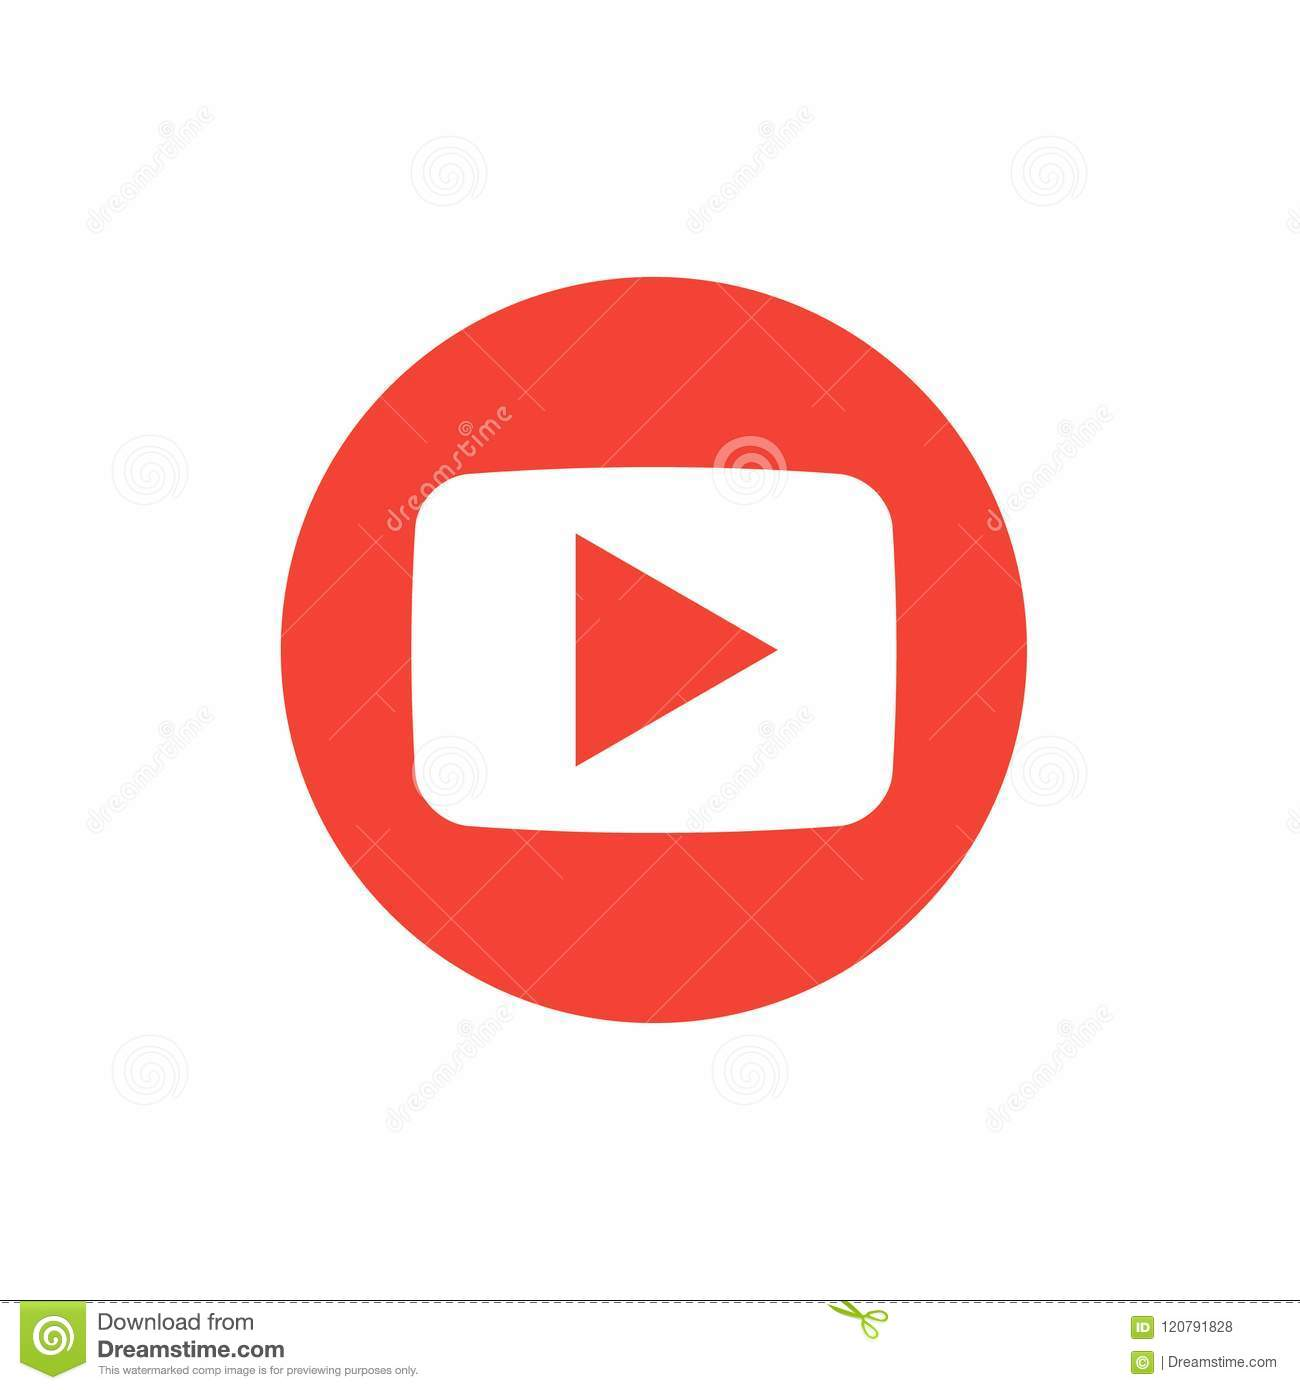 Red round button video player Social media.